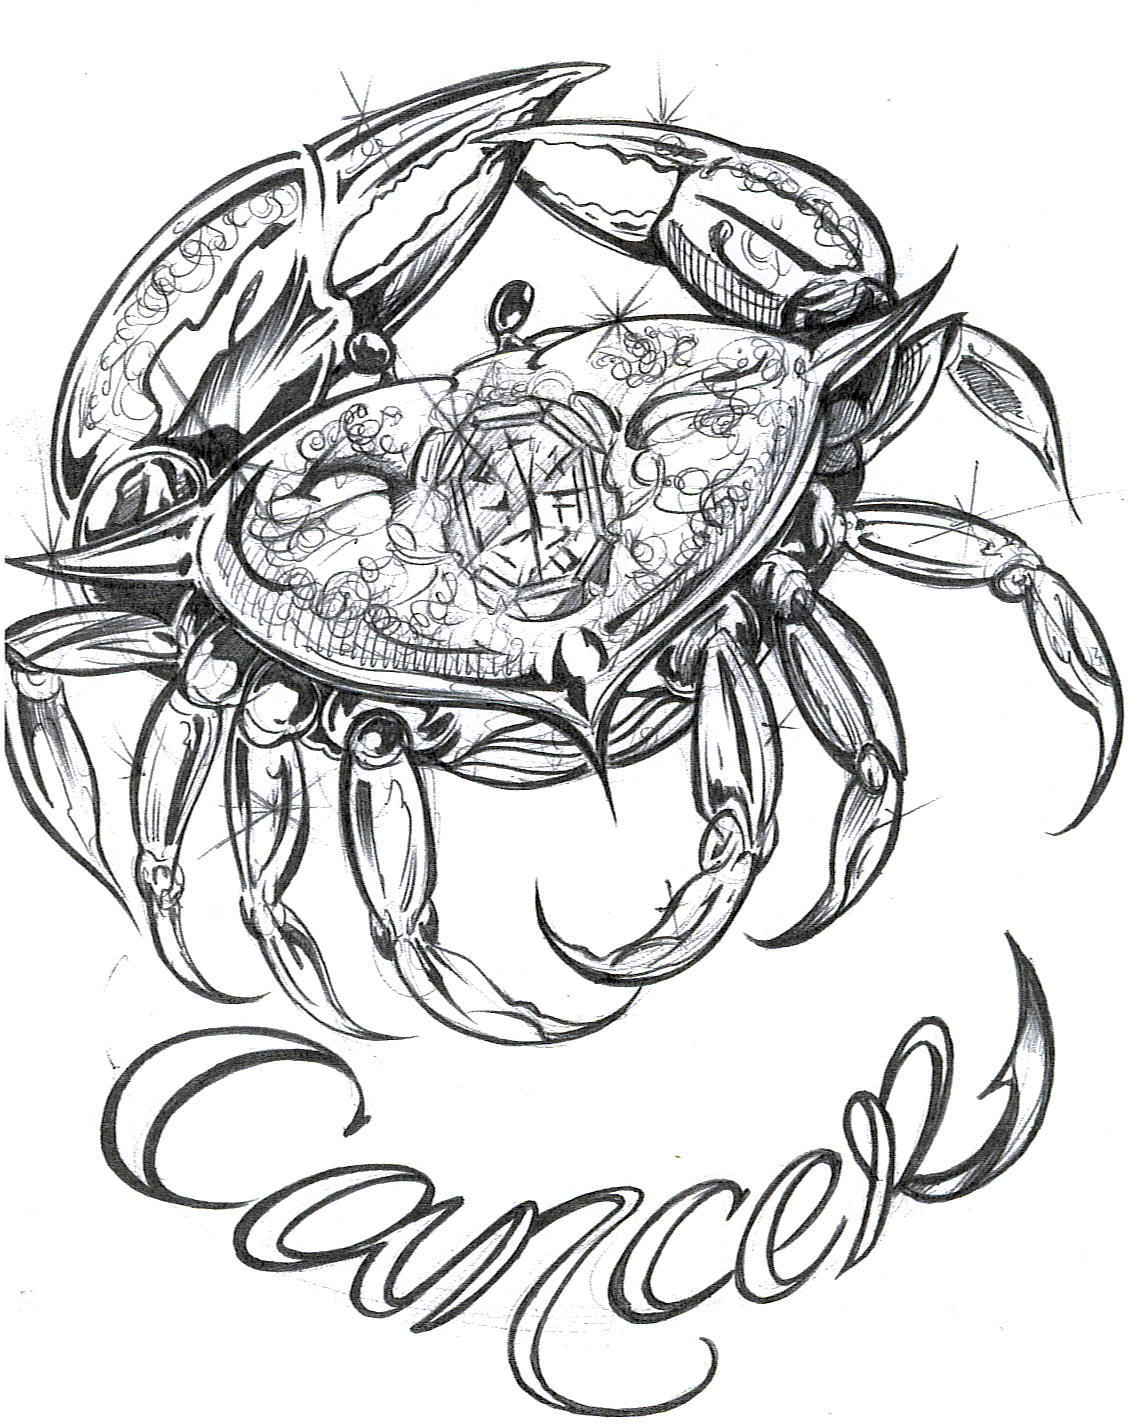 Zodiac Crab Tattoo Designs